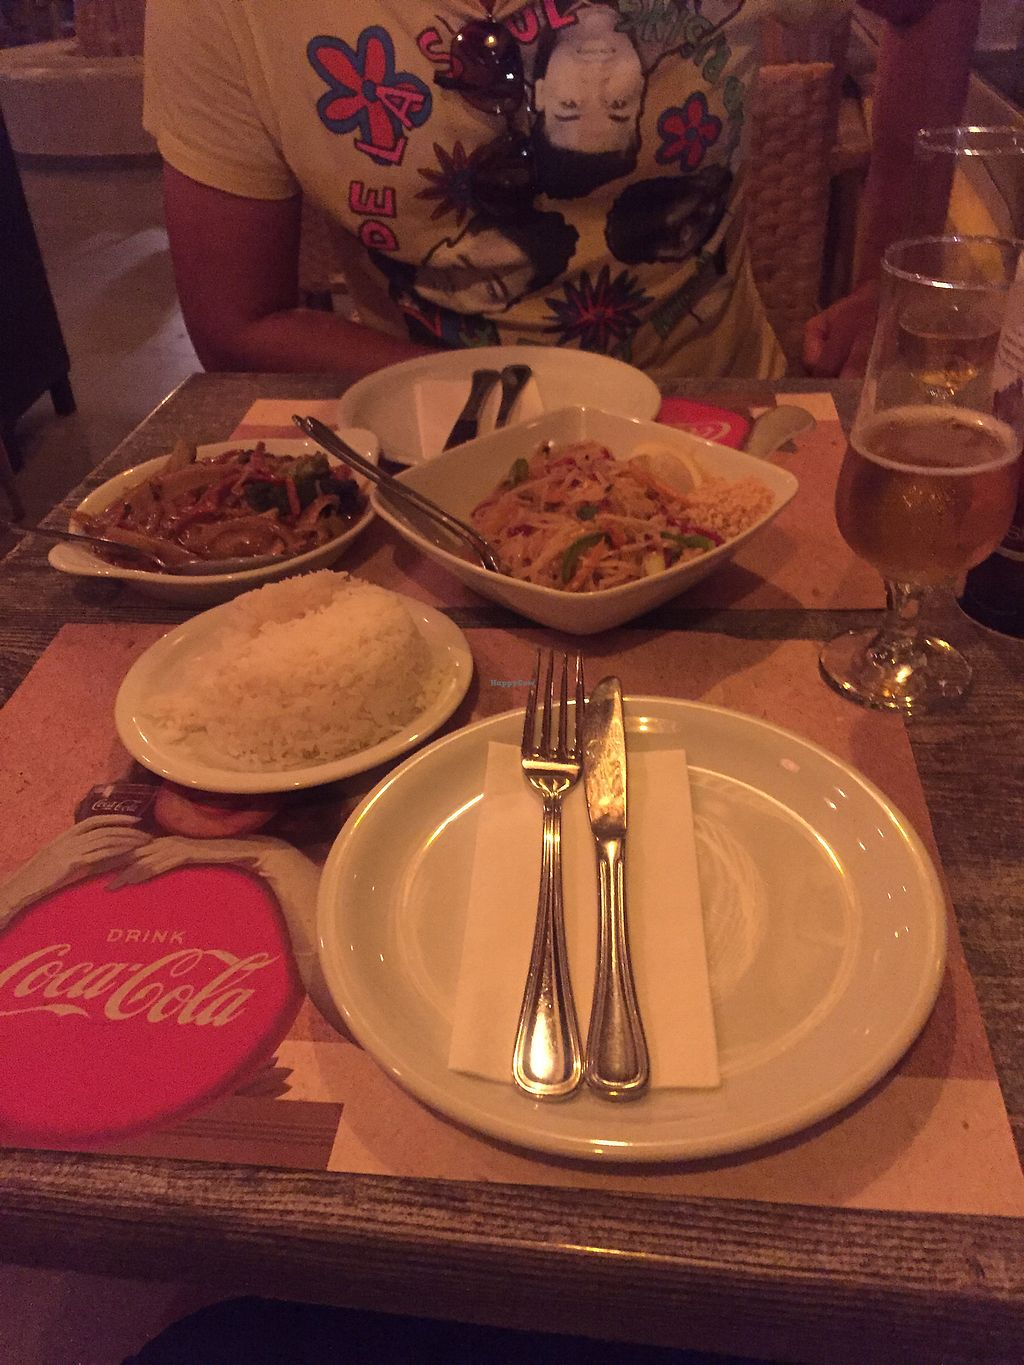 """Photo of Paradox Thai Food and Bar  by <a href=""""/members/profile/SoniaJames"""">SoniaJames</a> <br/>Our Vegan main <br/> September 18, 2017  - <a href='/contact/abuse/image/96811/305824'>Report</a>"""